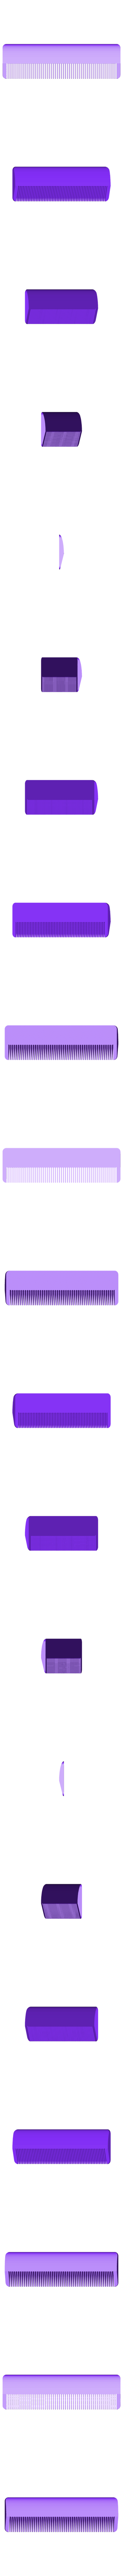 customized_hair_comb_no1.stl Download free STL file Customizable Comb • 3D printable model, MightyNozzle